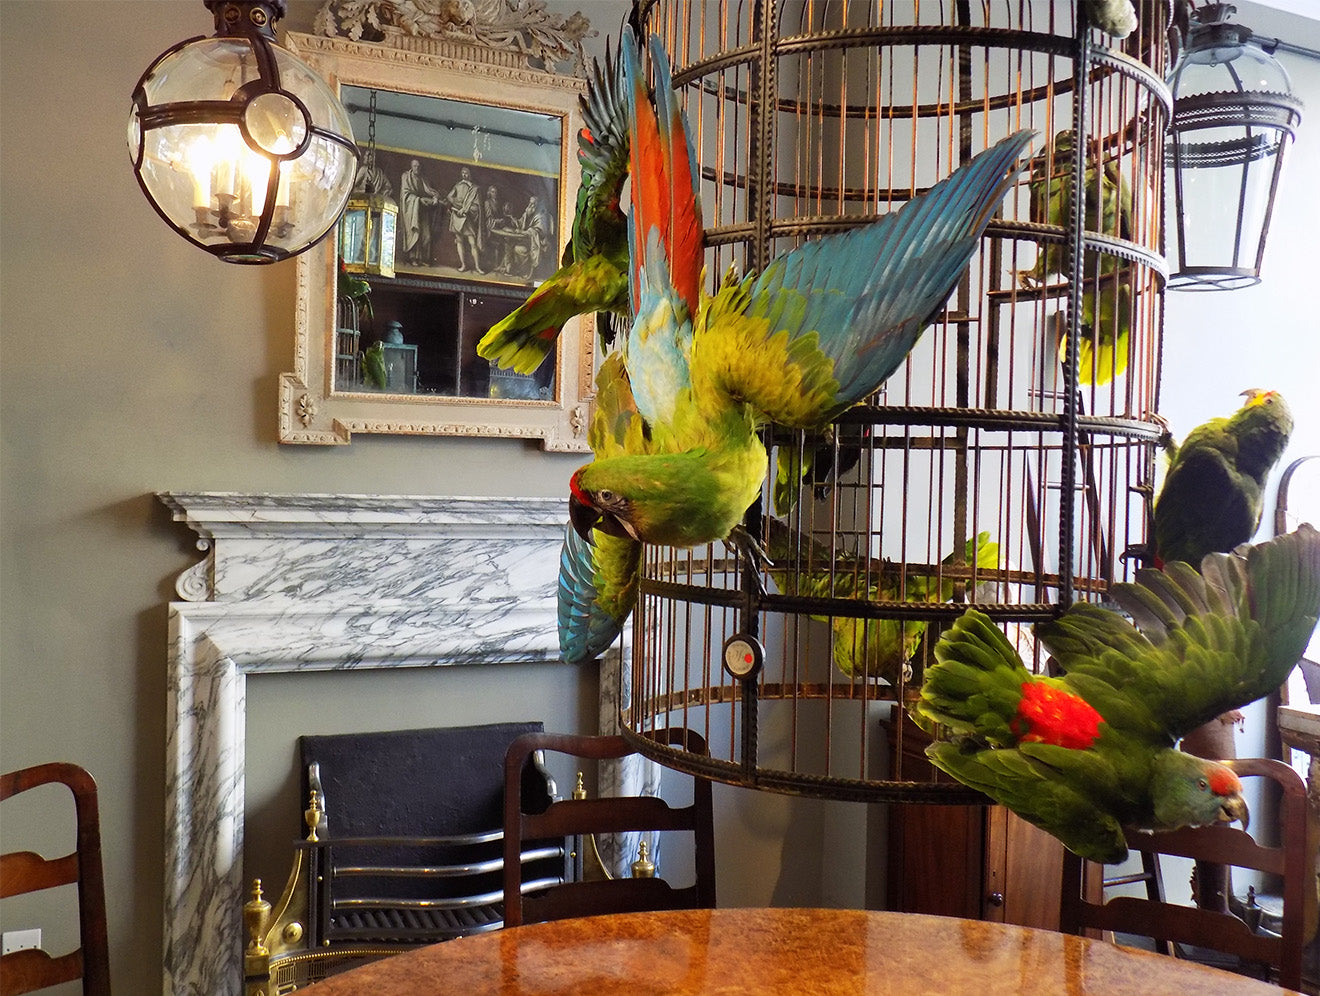 Parrot taxidermy display at Jamb